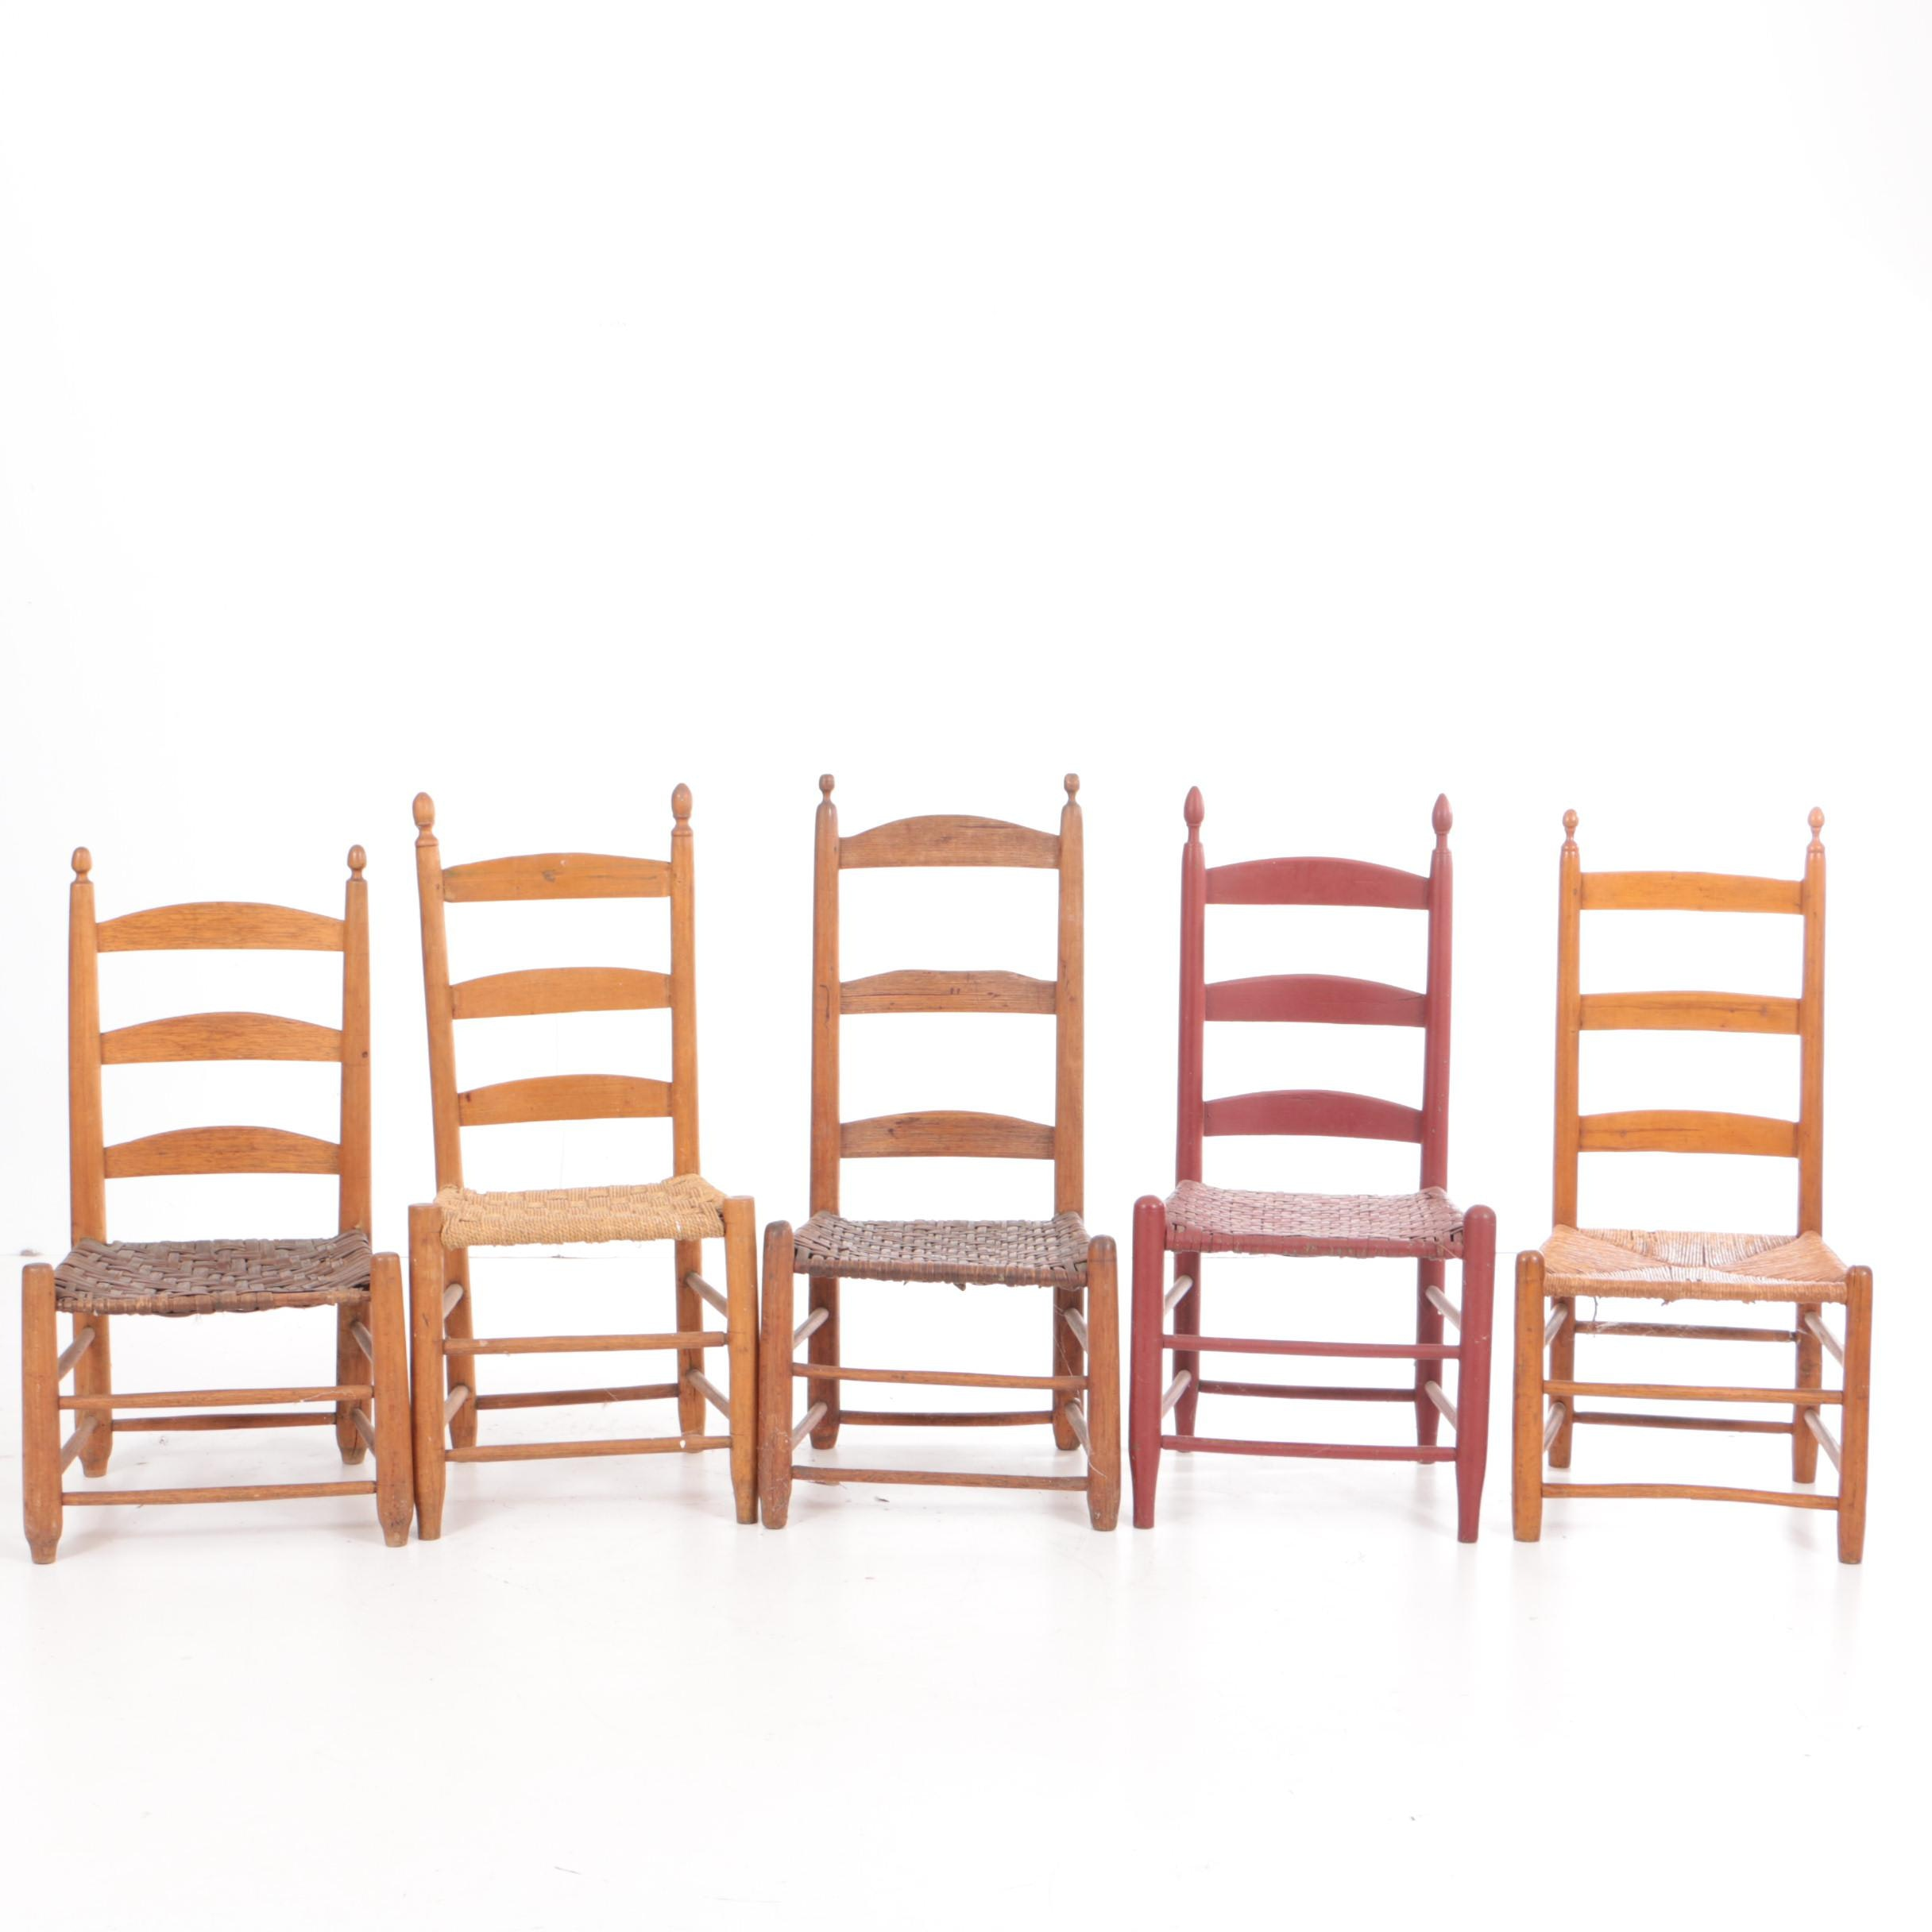 Antique Ladderback Side Chairs with Woven Seats